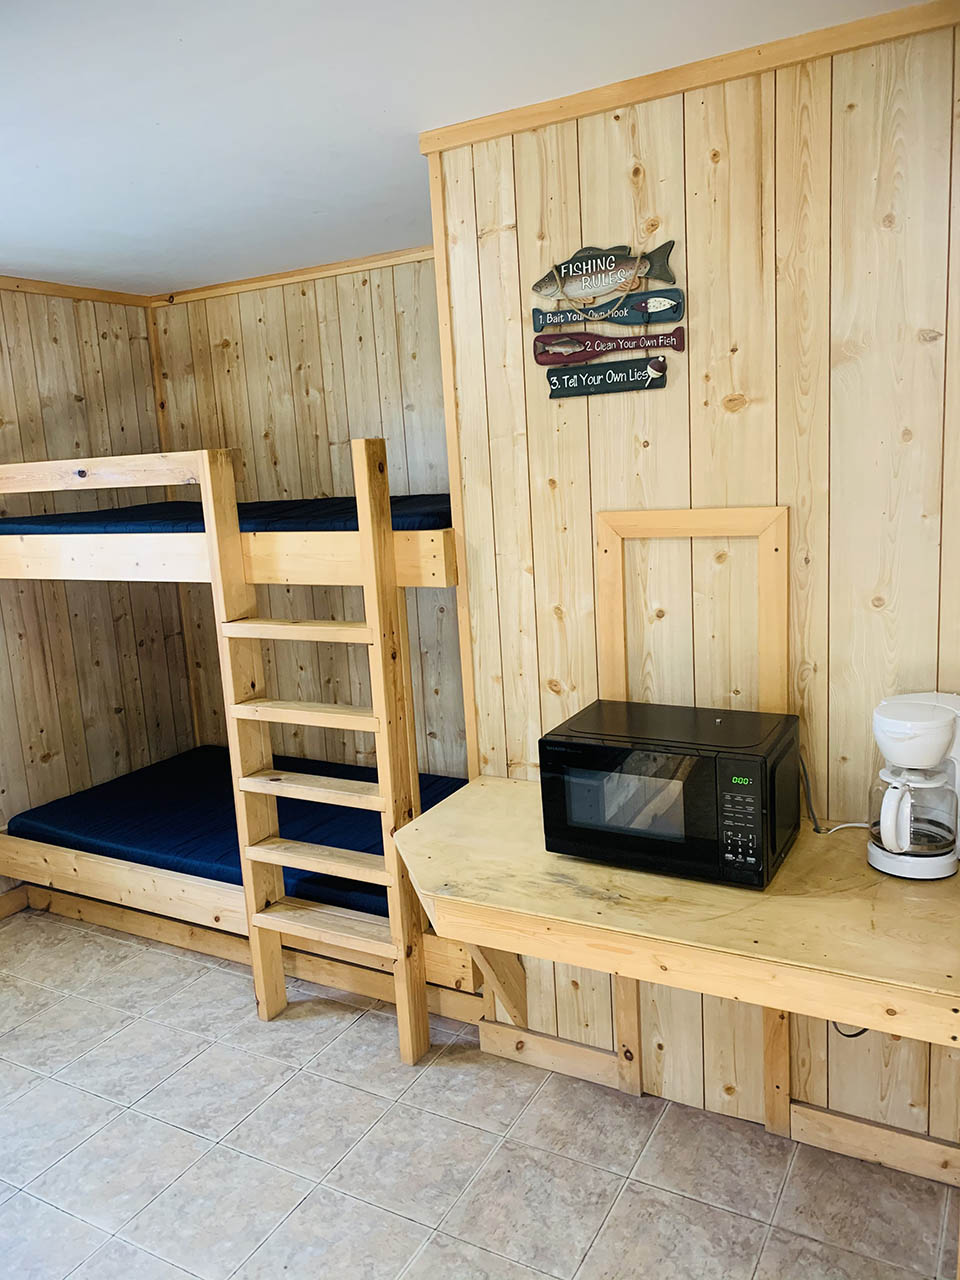 bunk bed and kitchenette